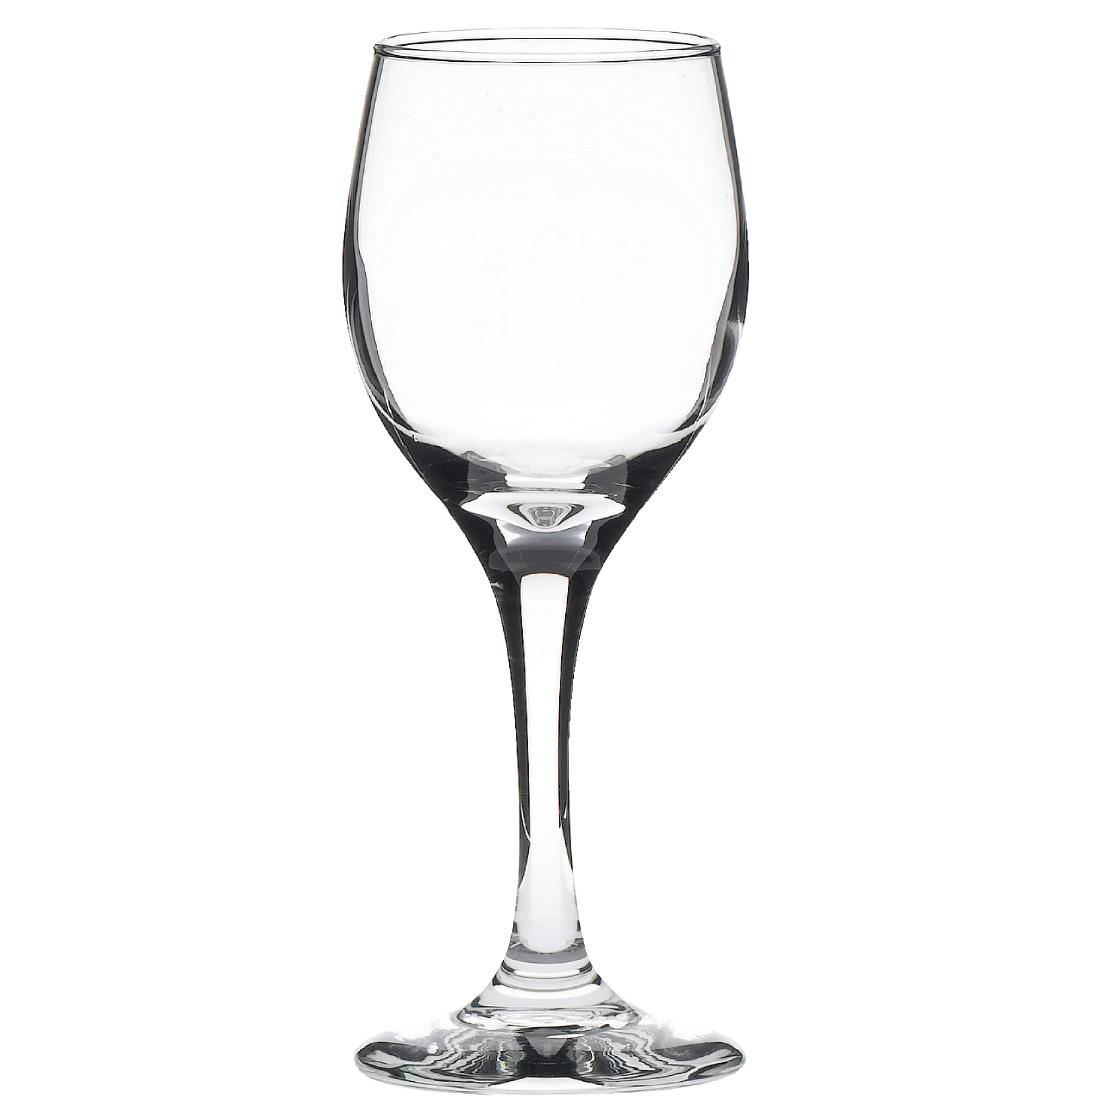 Libbey Perception Wine Glasses 240ml CE Marked at 175ml Pack of 12